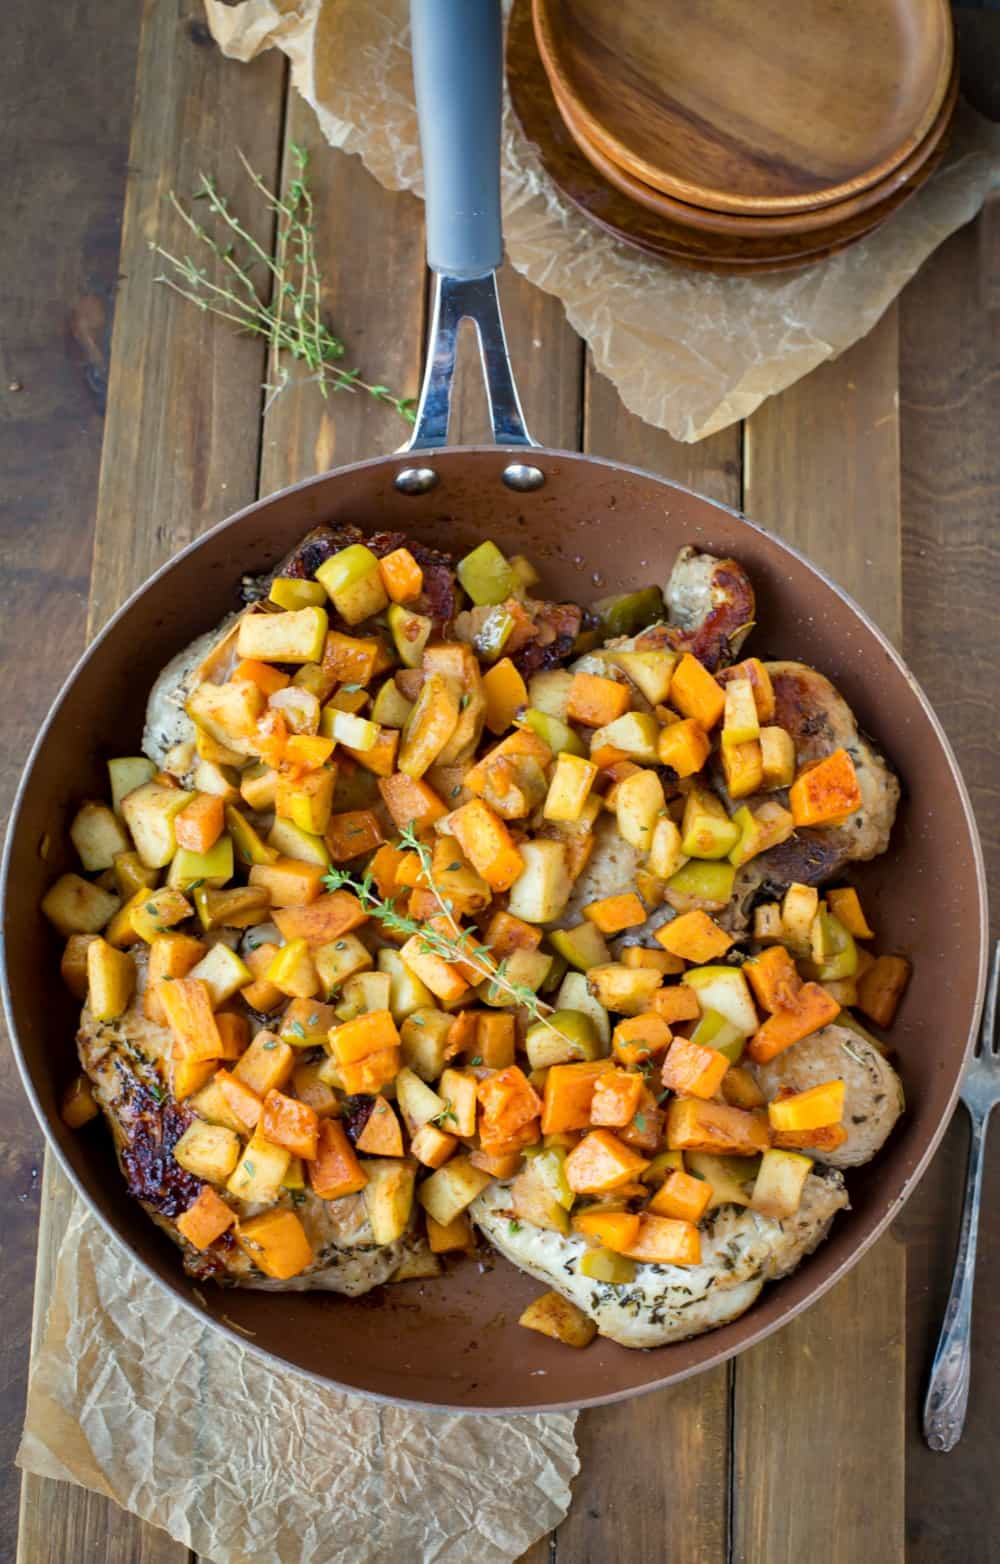 Pork Chops with Cinnamon Apples and Butternut Squash in a copper skillet topped with thyme